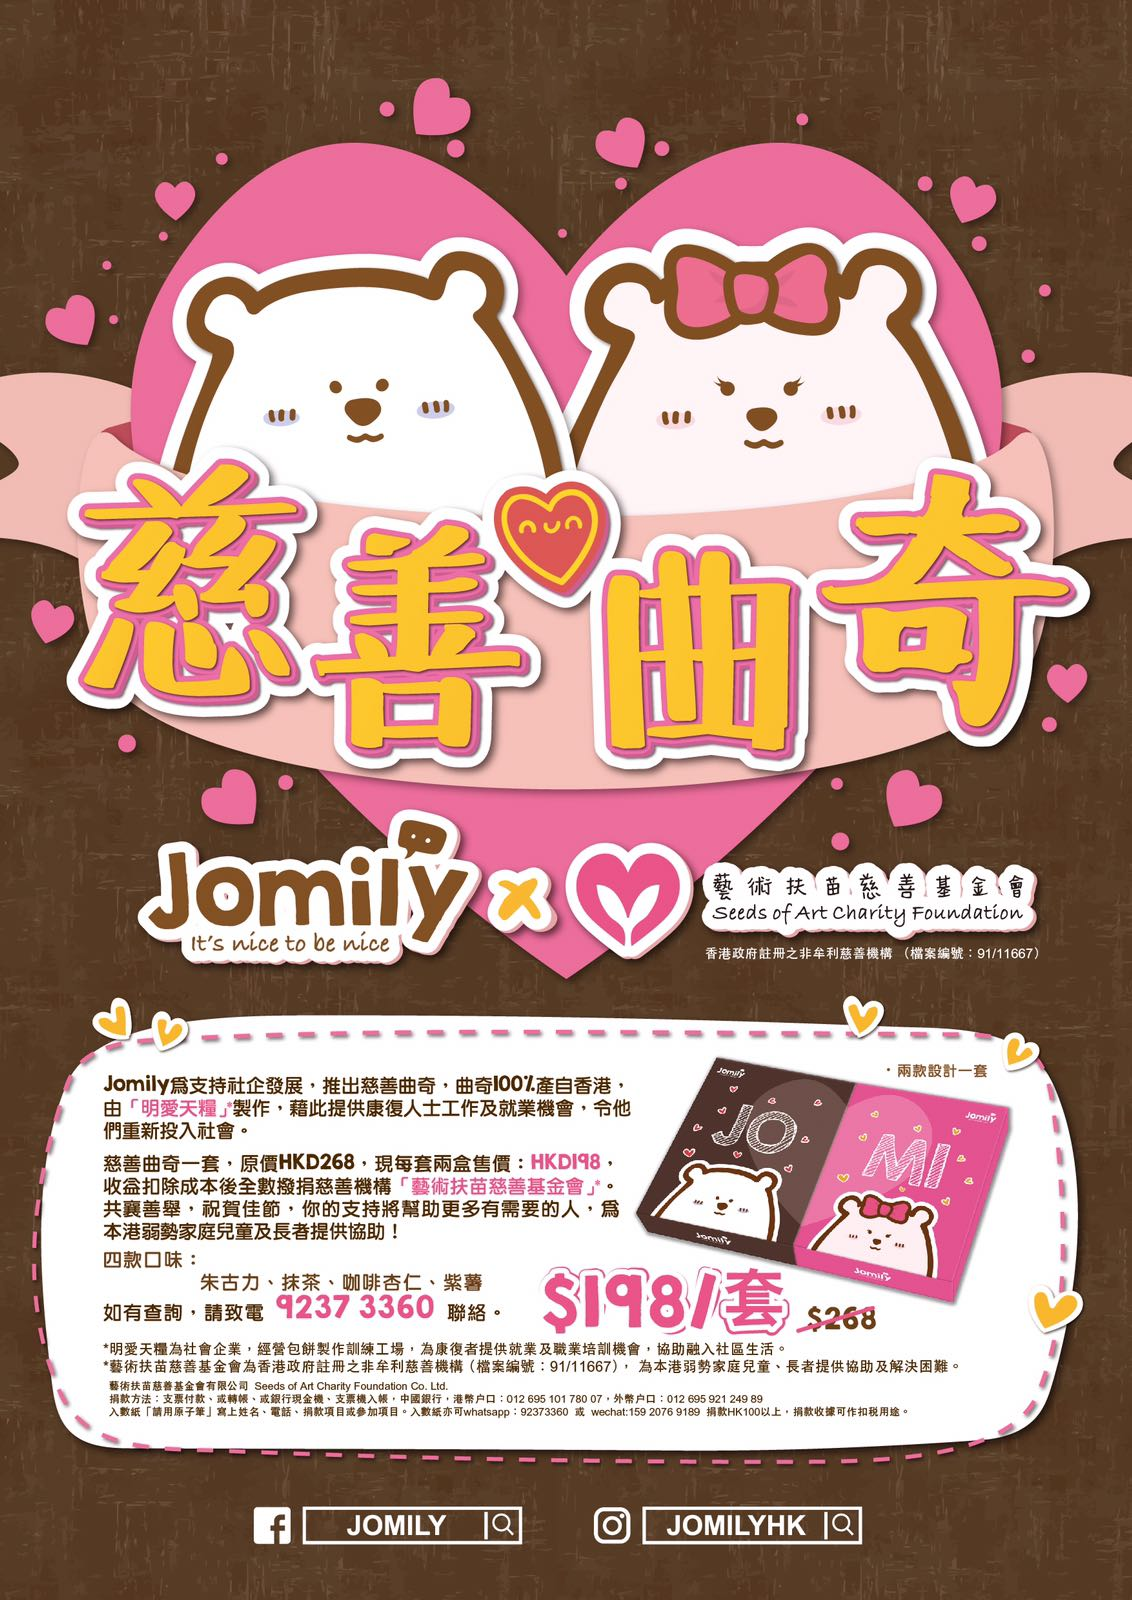 soacfl org Jomily caritaslavie org hk Collaboration Charity Cookies